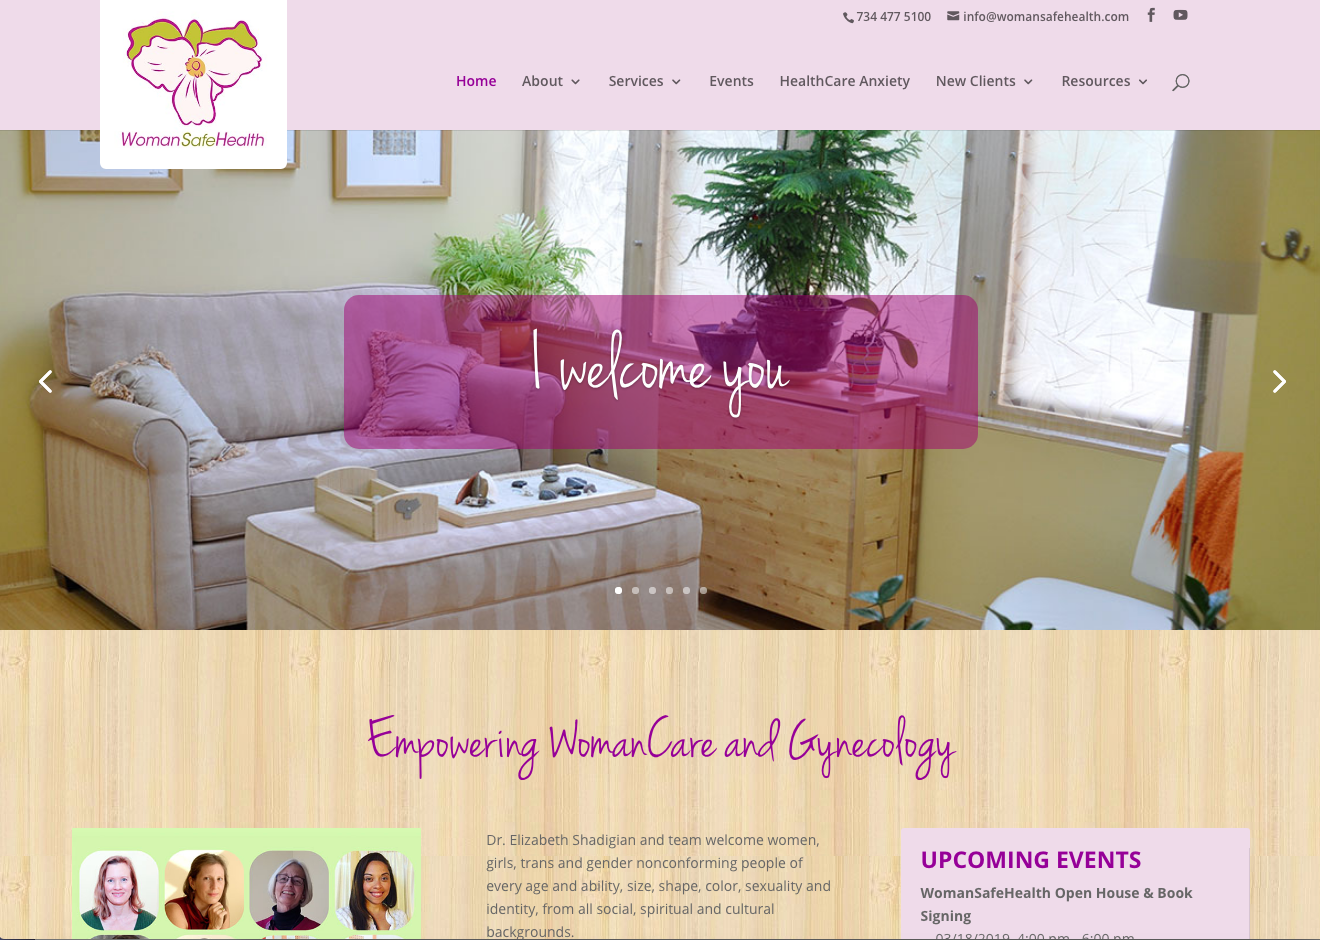 Screenshot of WomanSafeHealth home page